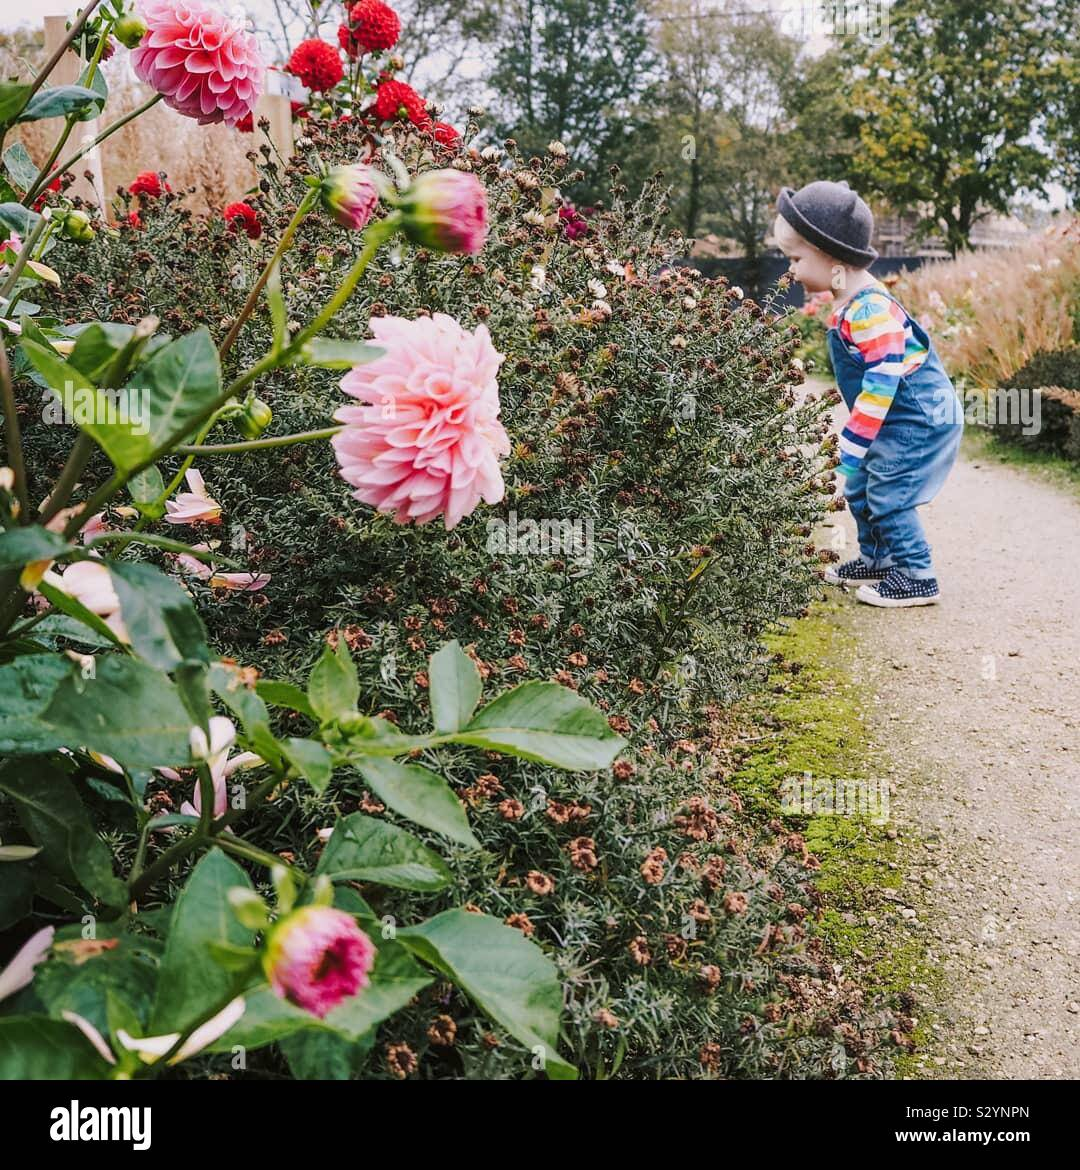 Little girl wearing a hat smelling flowers Stock Photo